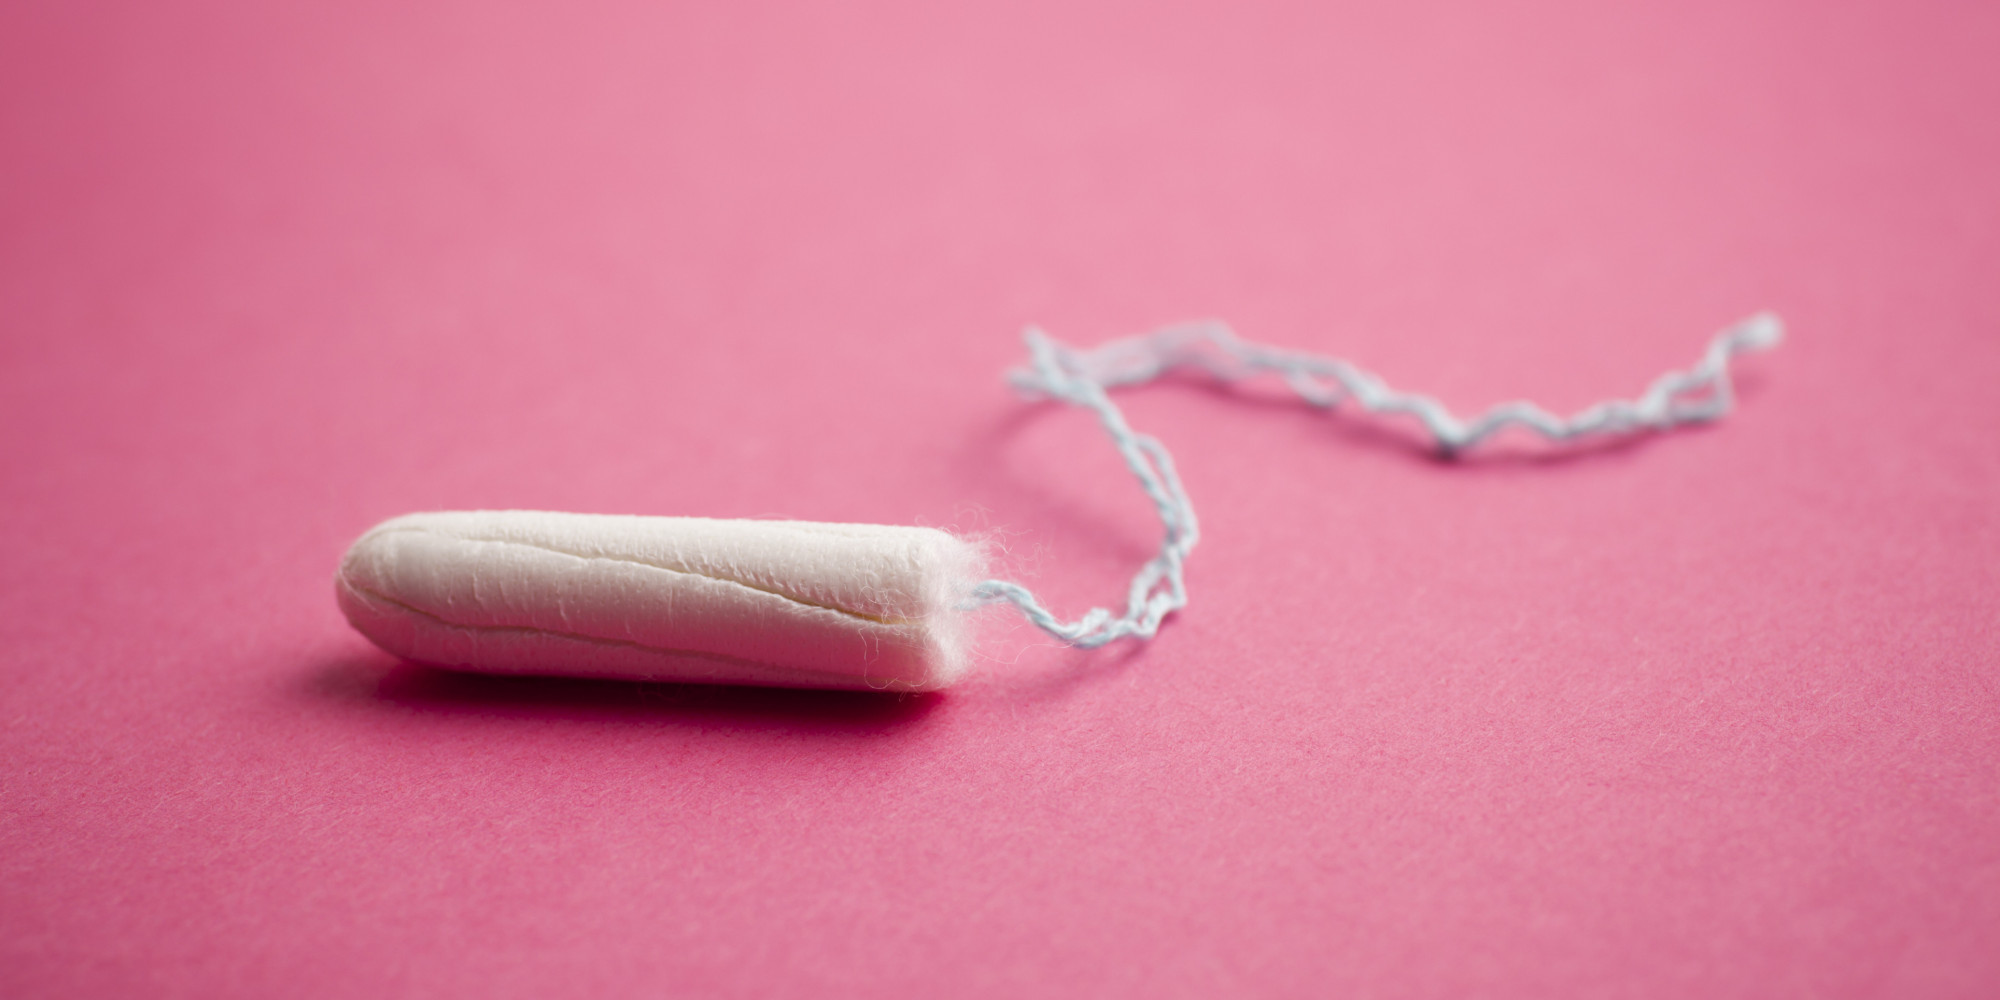 No i 39 m not going to hide my tampon from you huffpost - How to go to the bathroom with a tampon in ...